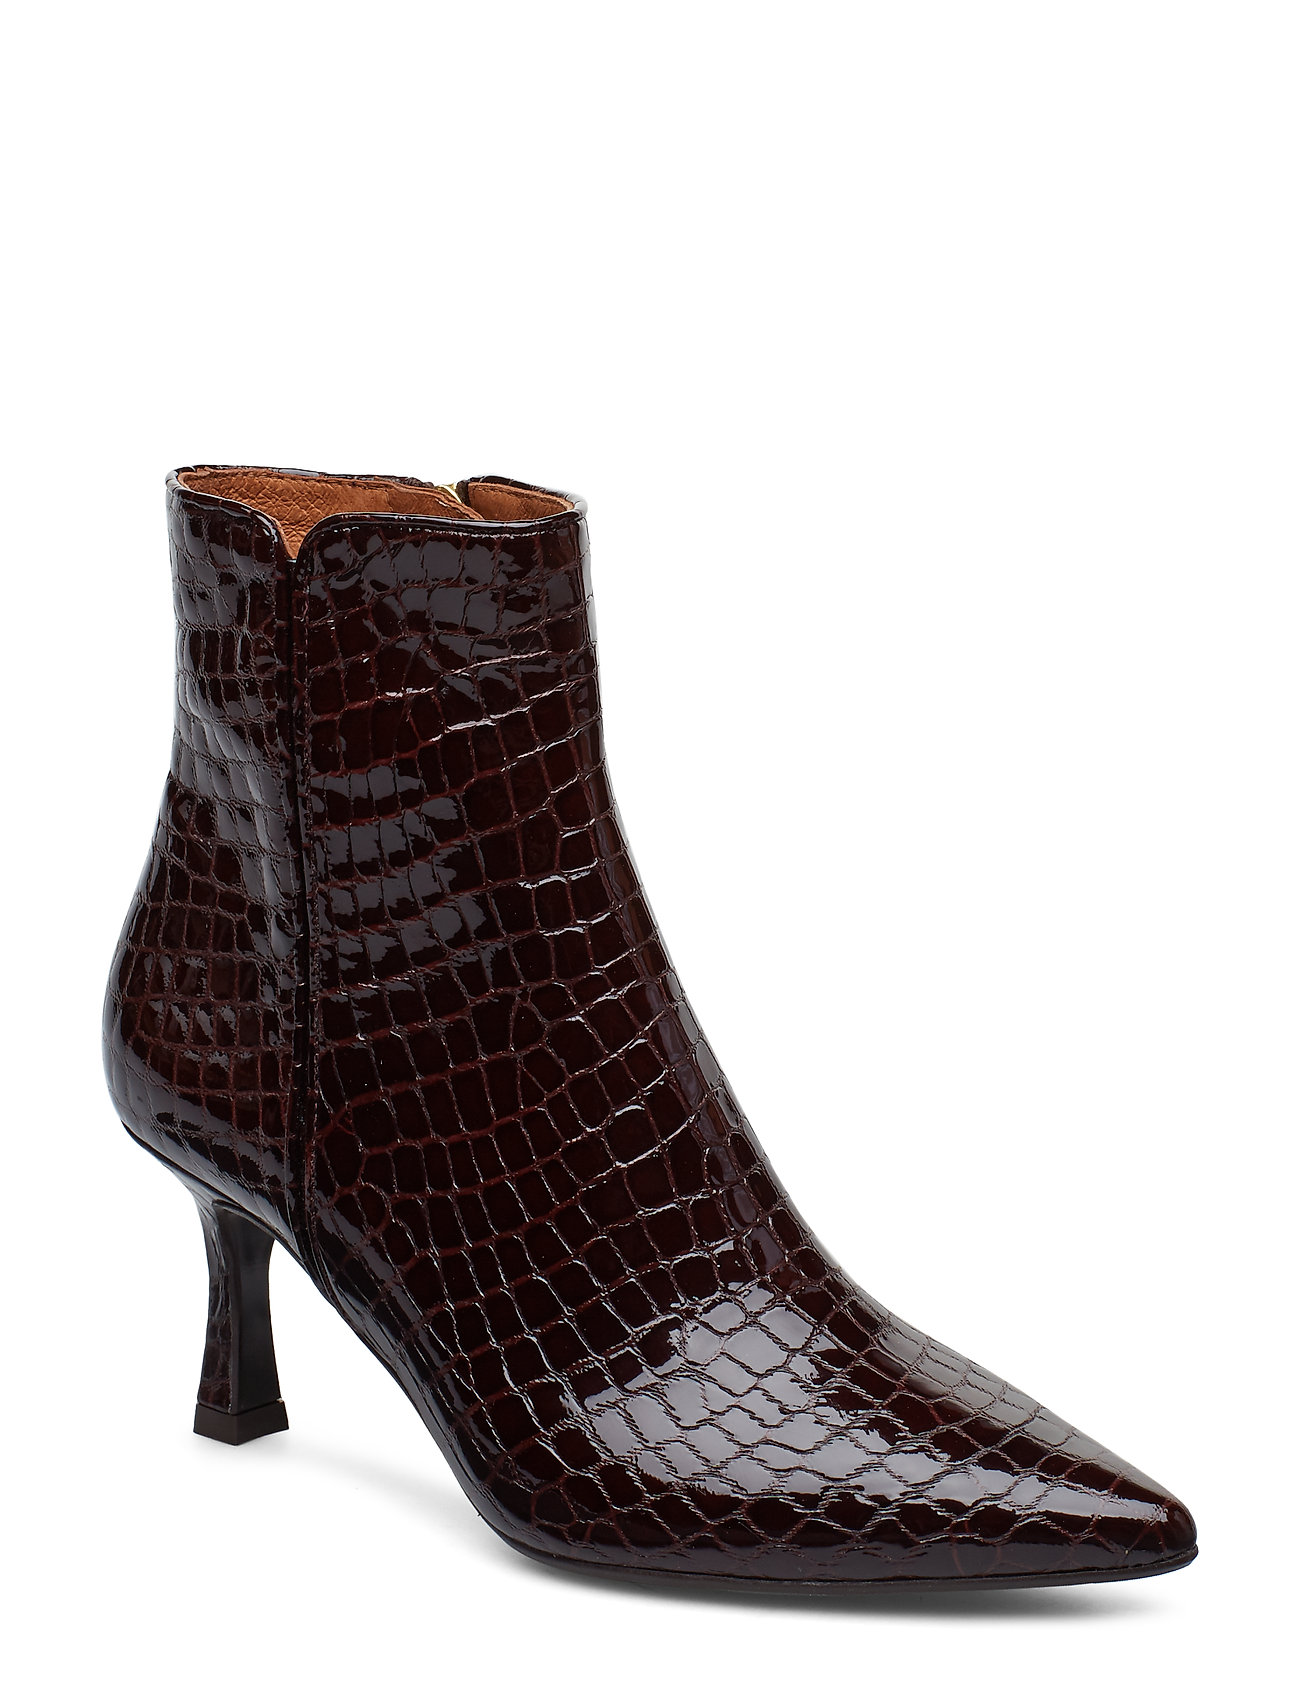 Image of Booties 3354 Shoes Boots Ankle Boots Ankle Boots With Heel Brun Billi Bi (3203077919)